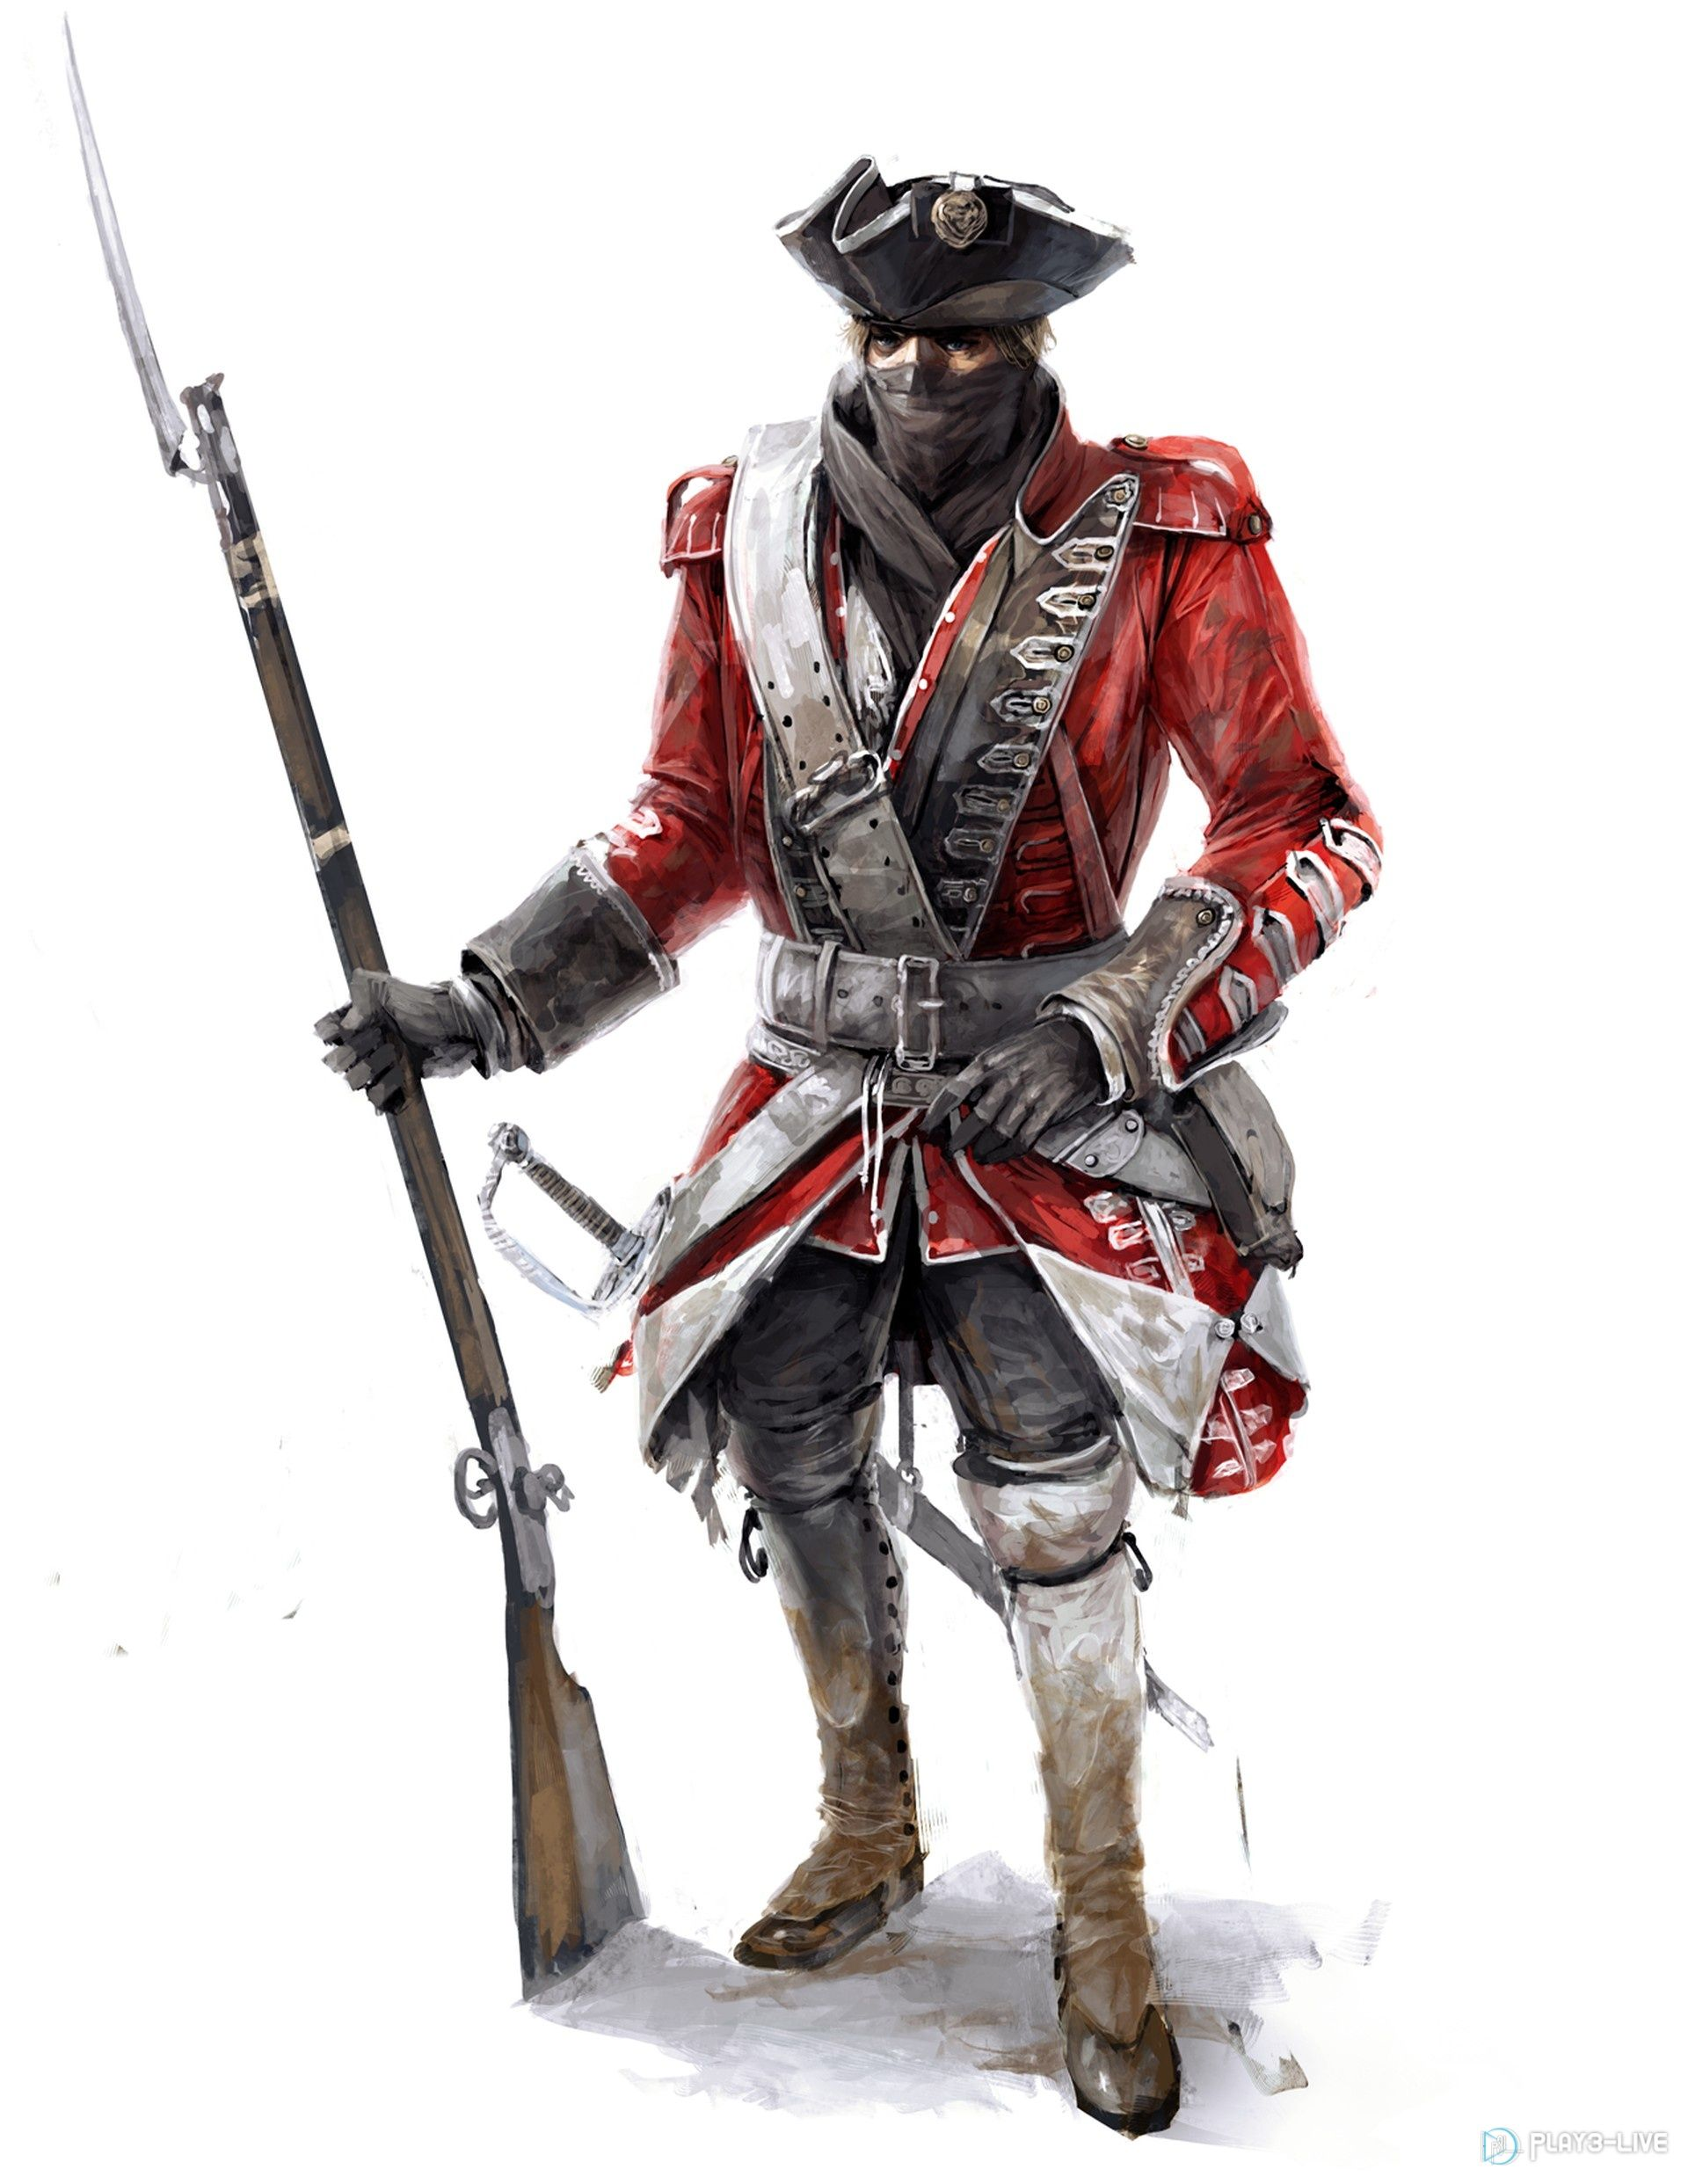 assassinscreed3britisharmyconceptart1348582158.jpg